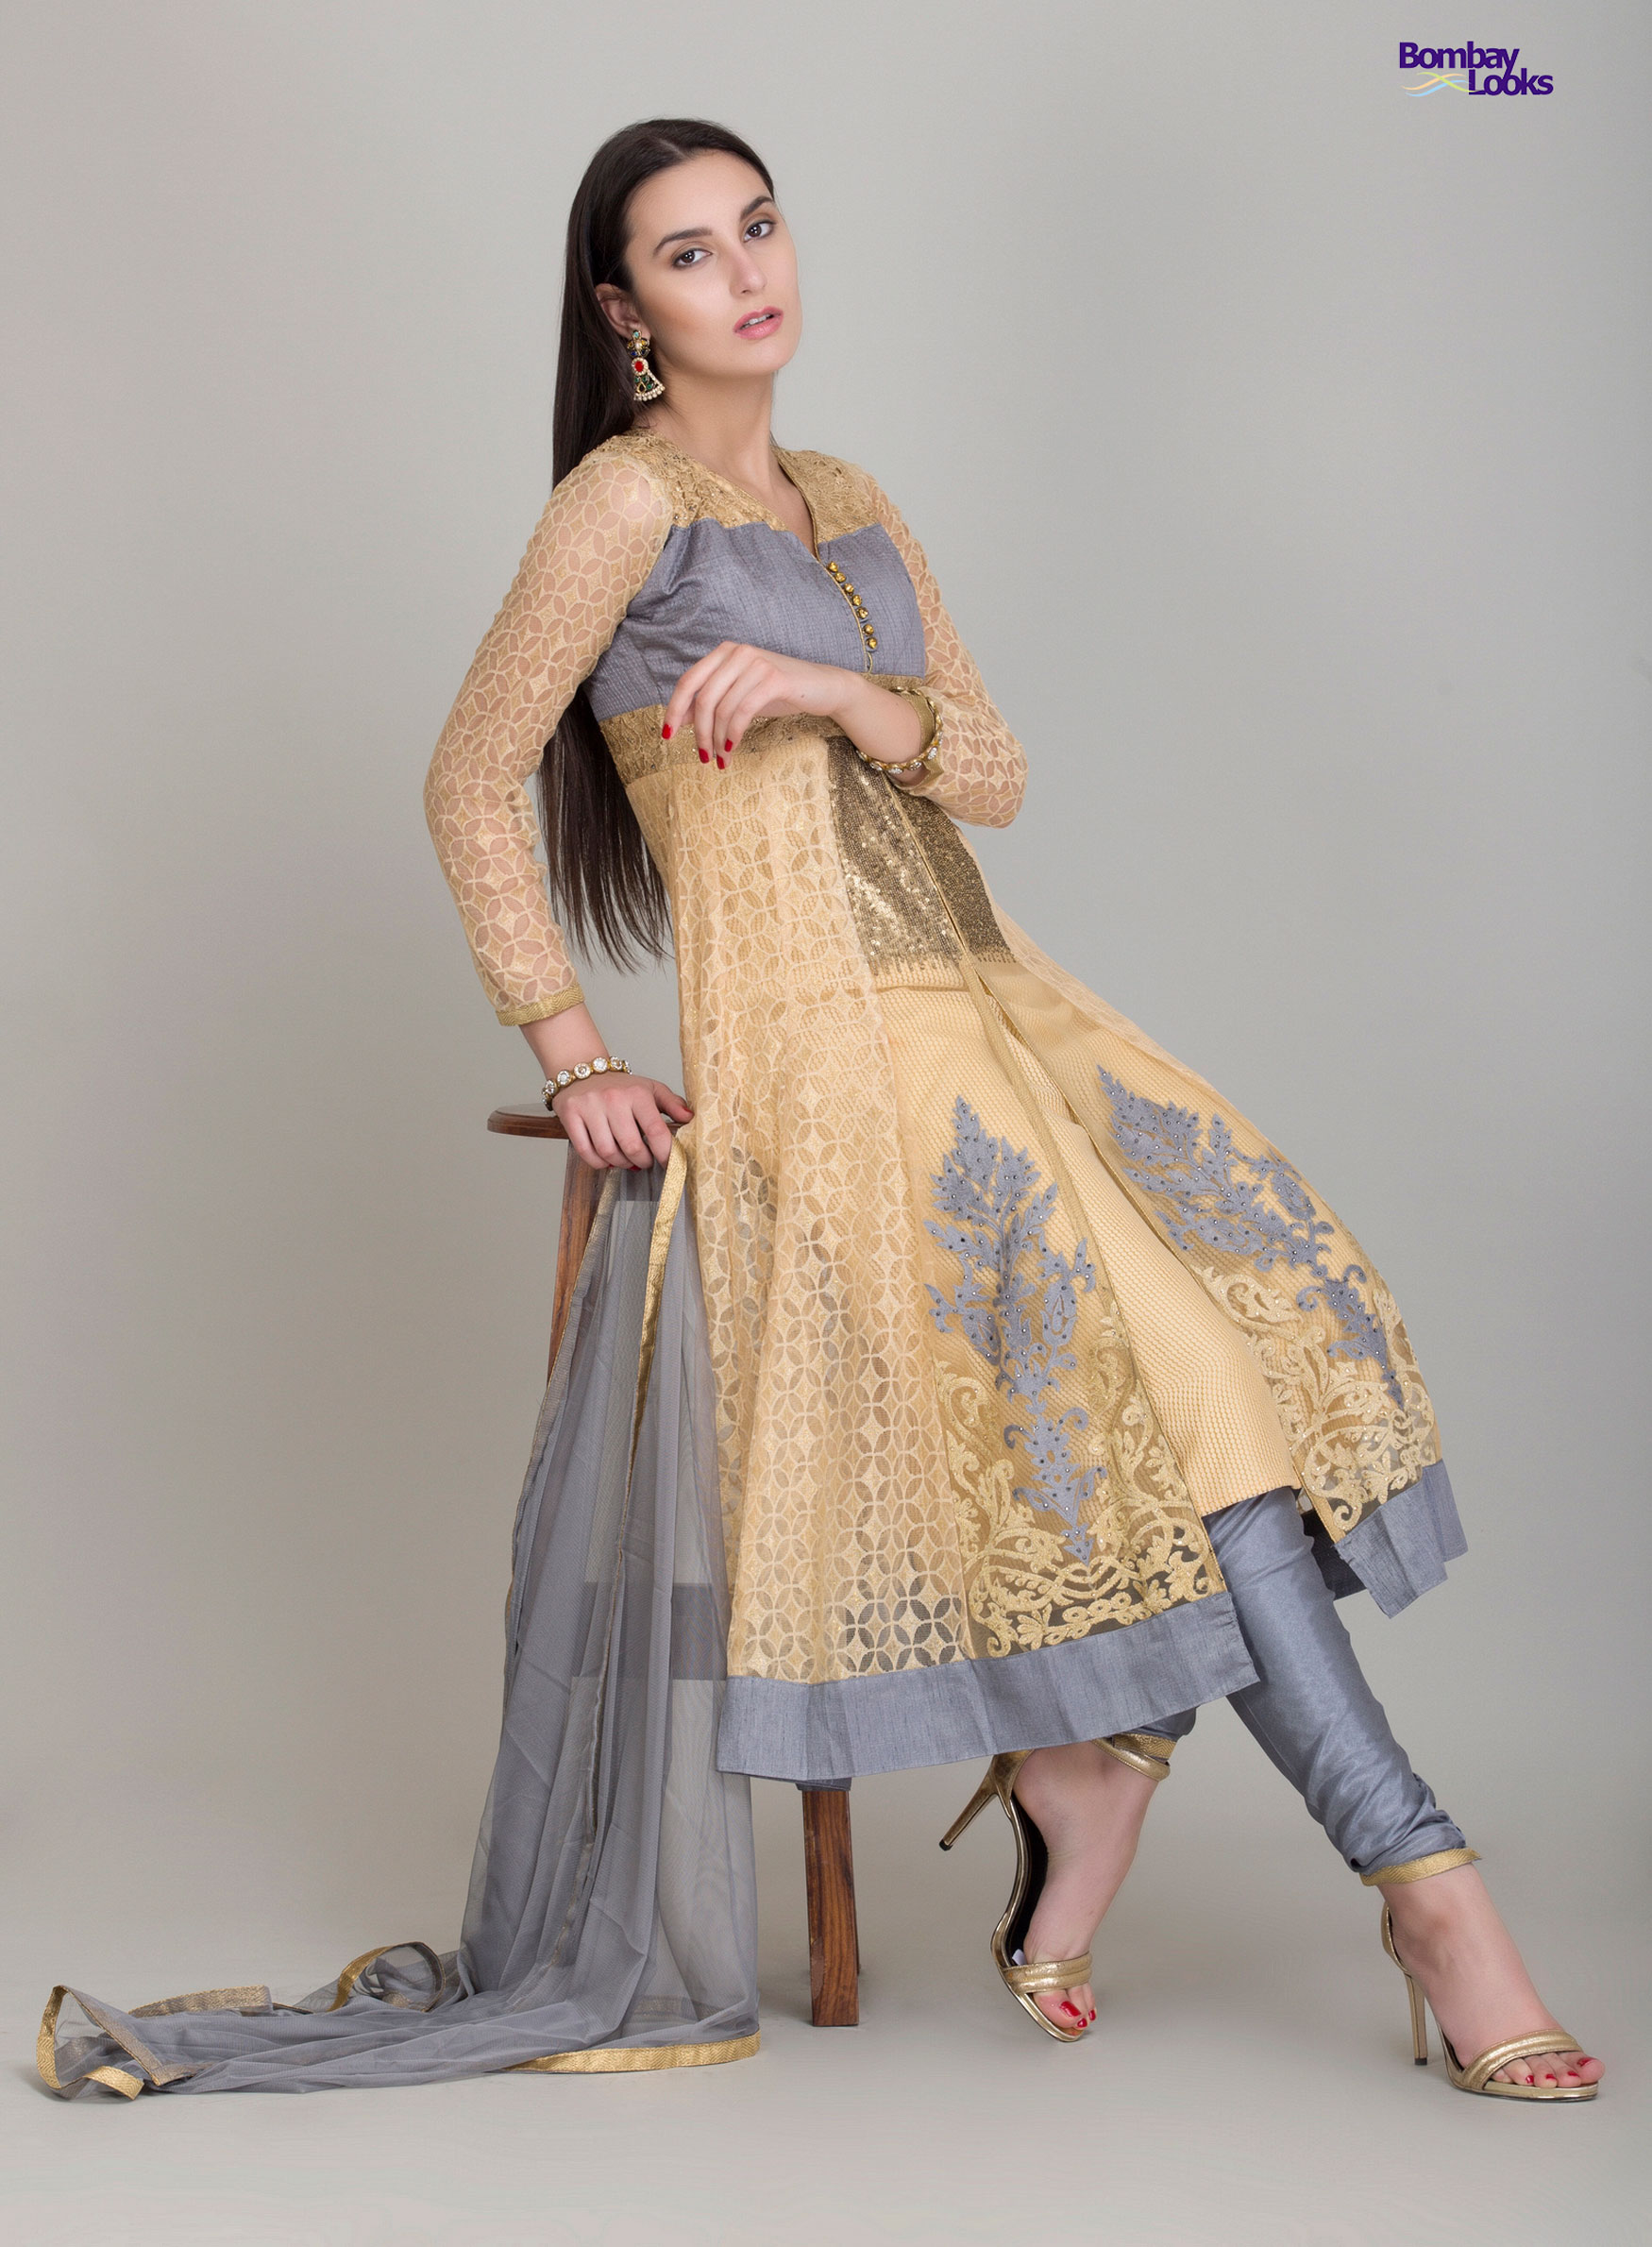 Stunning kalidaar suit with exquisite thread work in grey and beige